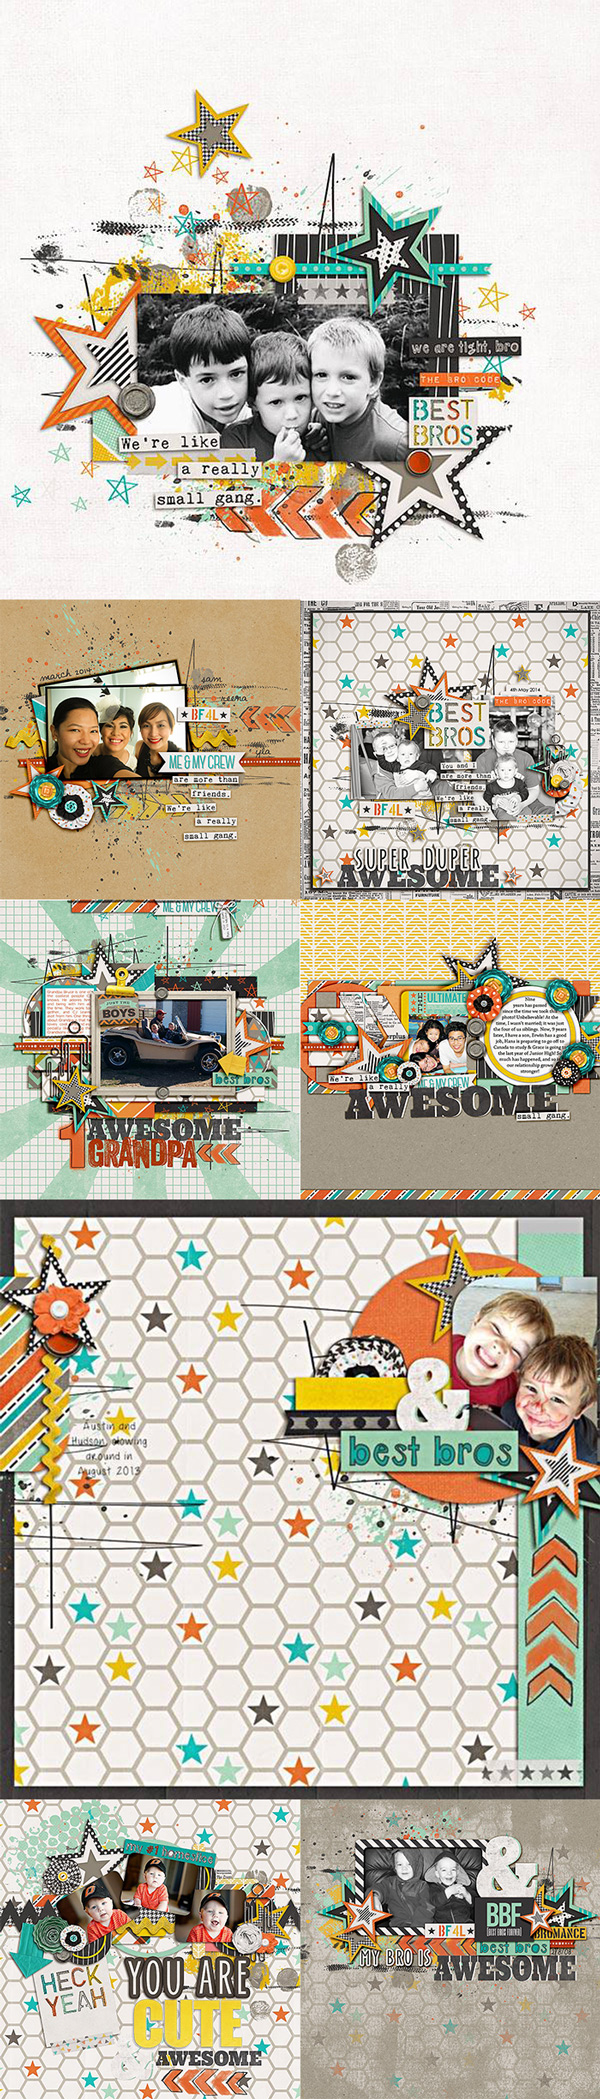 BadBromance-Layouts-Blog